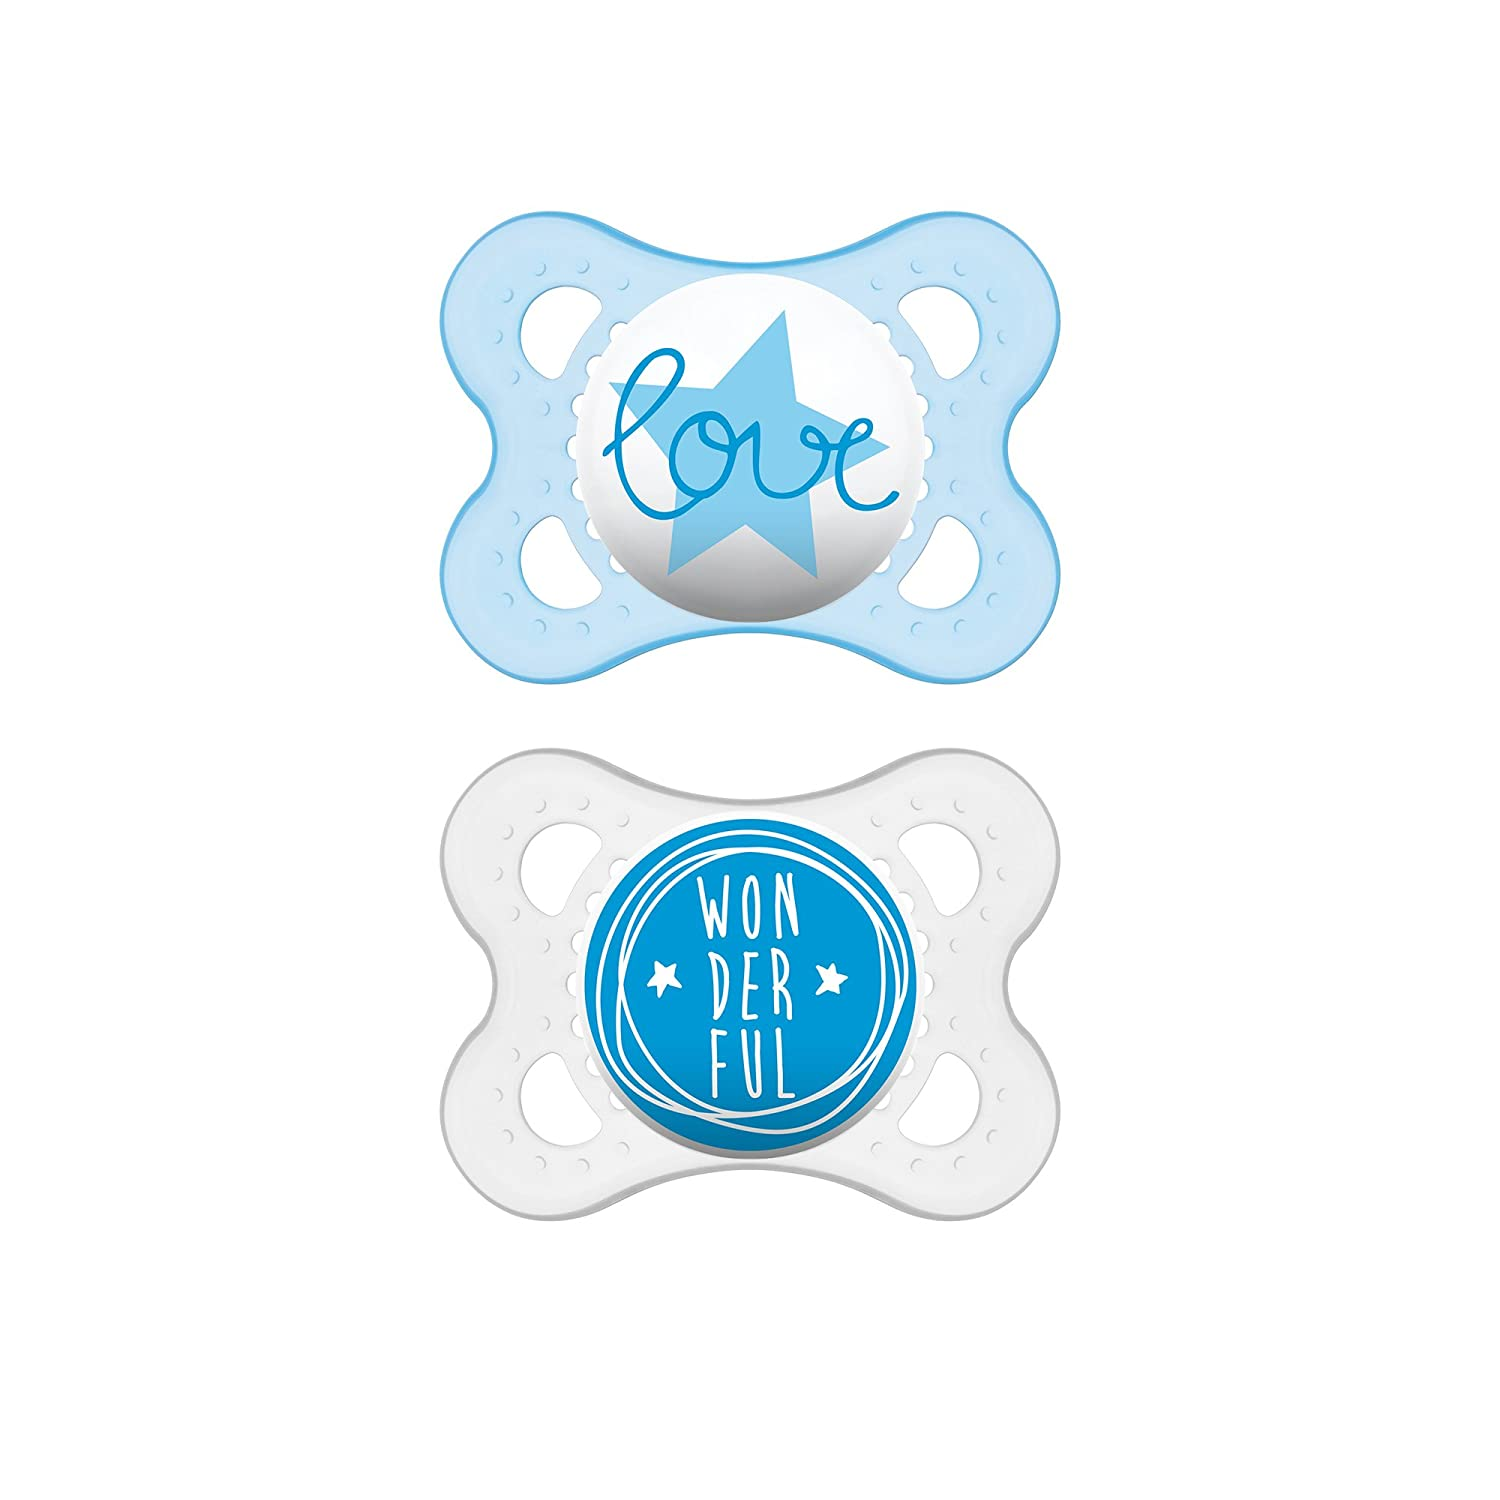 MAM Attitude Collection Pacifiers Designs May Vary MAM Pacifier 0-6 Months 2 pack, 1 Sterilizing Pacifier Case Baby Boy Pacifier Best Pacifier for Breastfed Babies